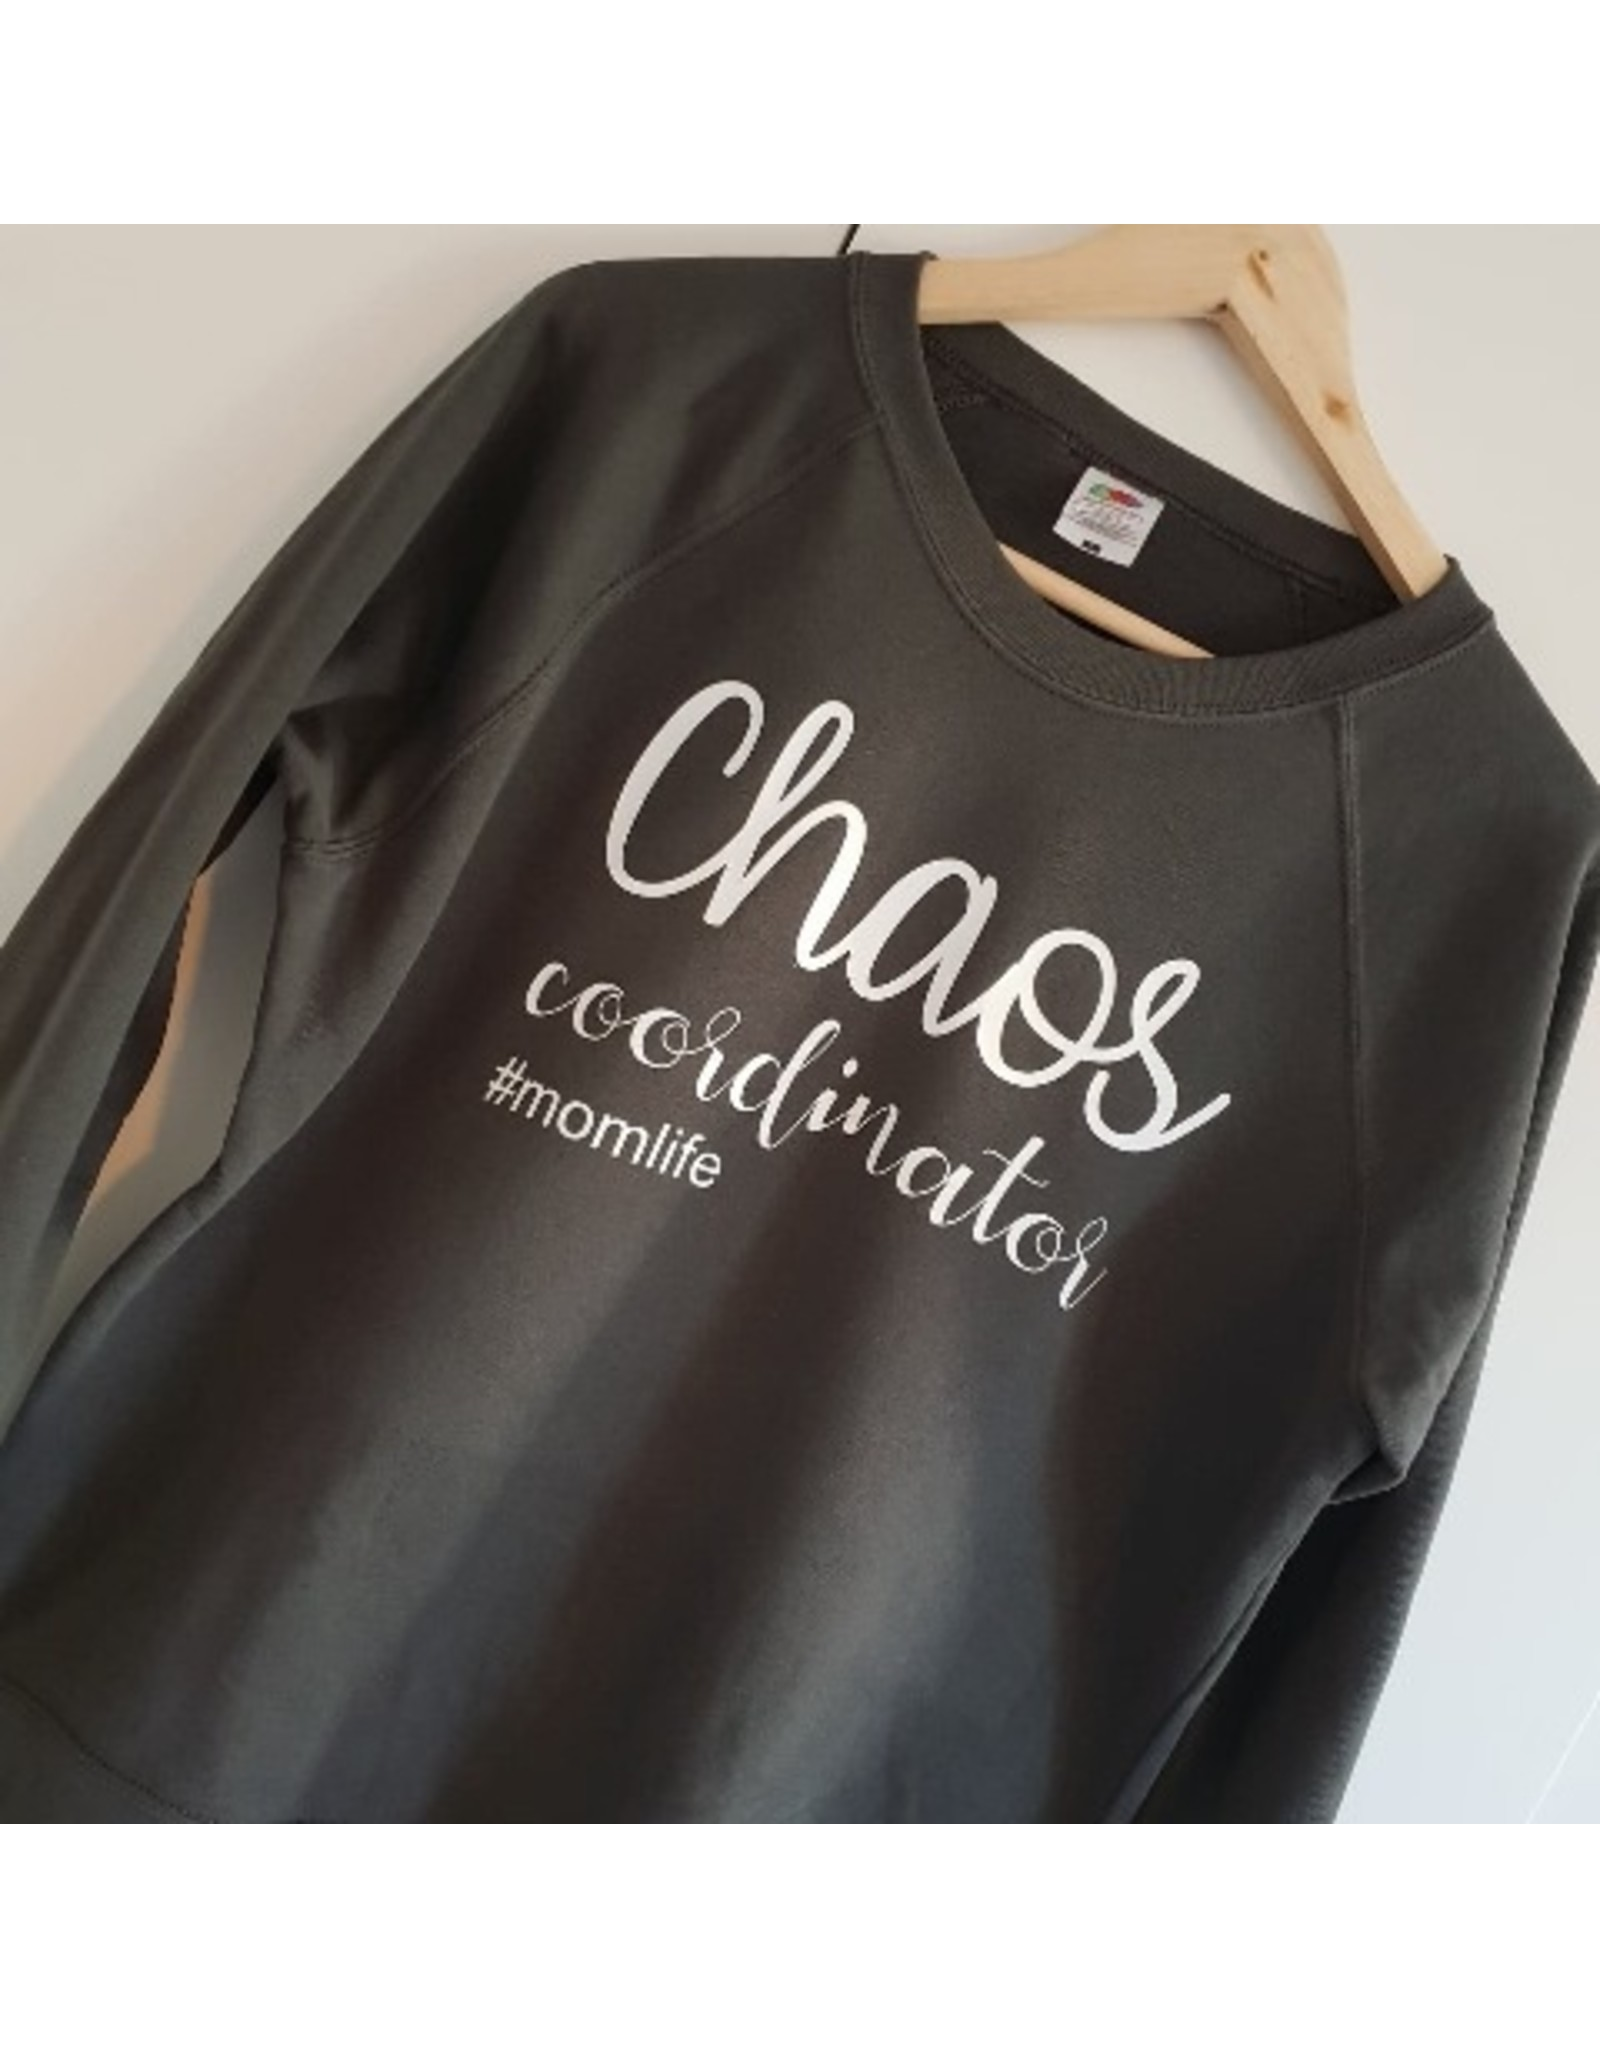 Sweater: Chaos